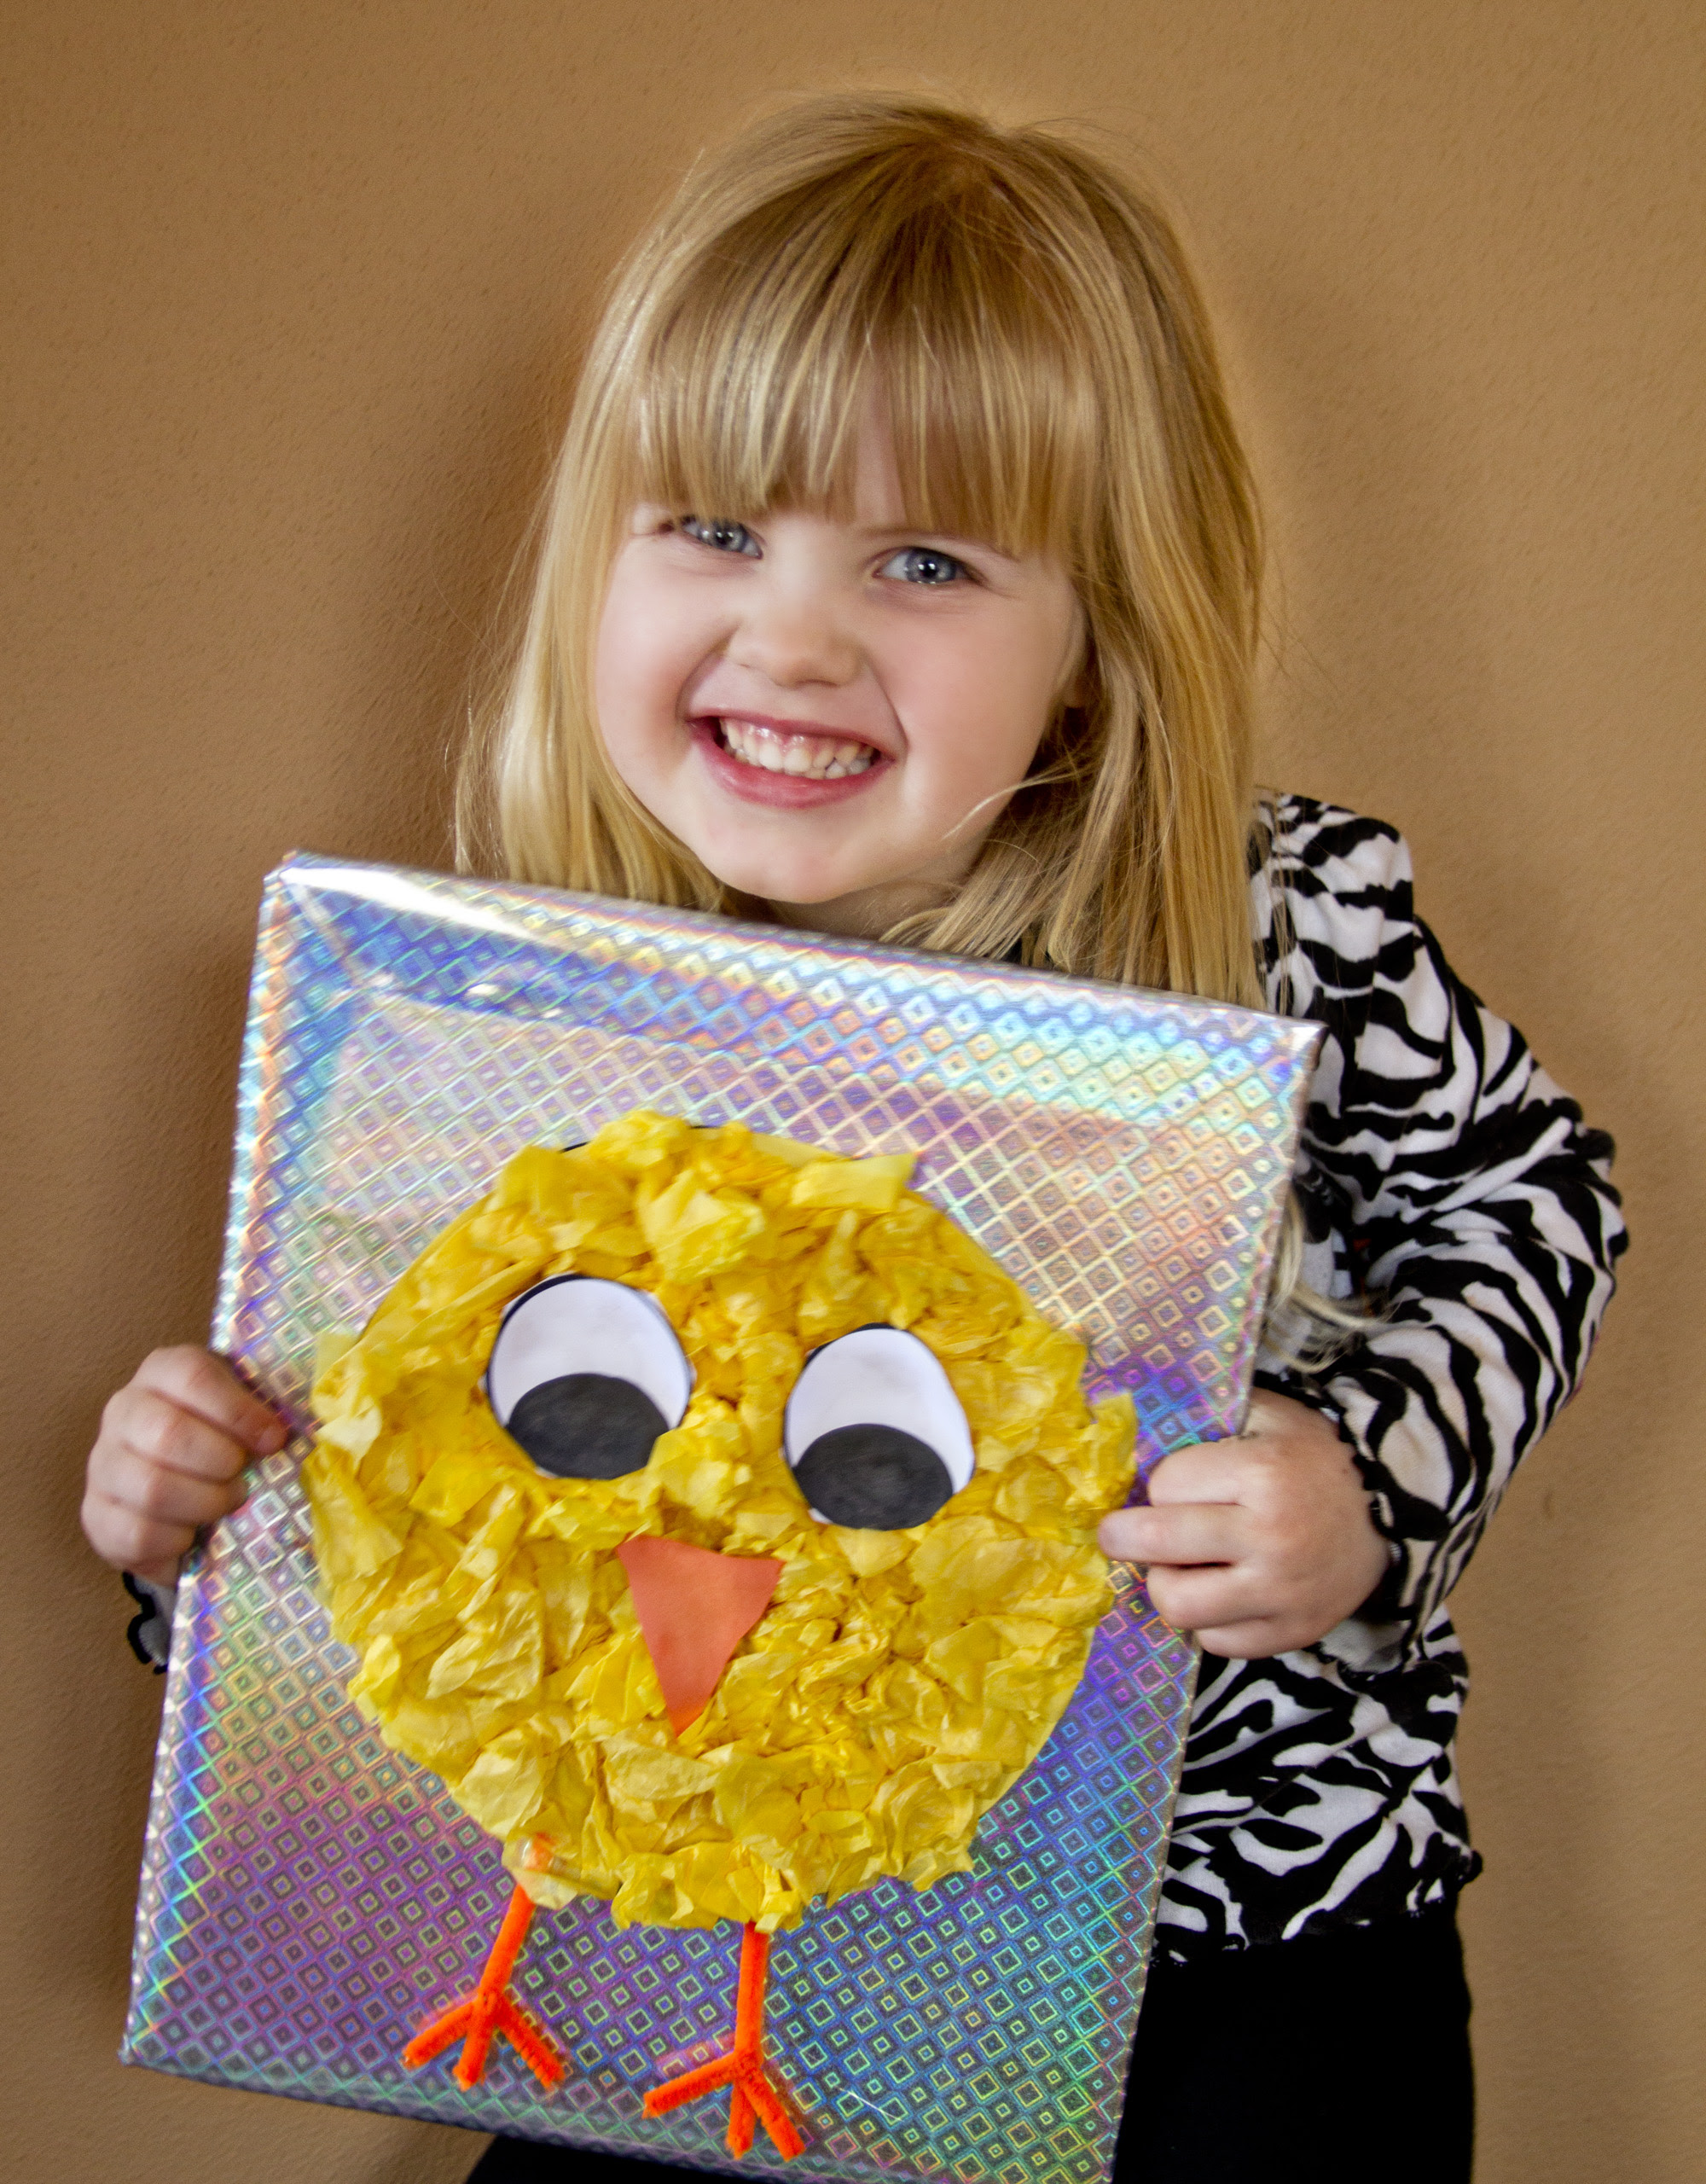 Easy Tissue Paper Craft for Preschool and Kindergarten for Easter